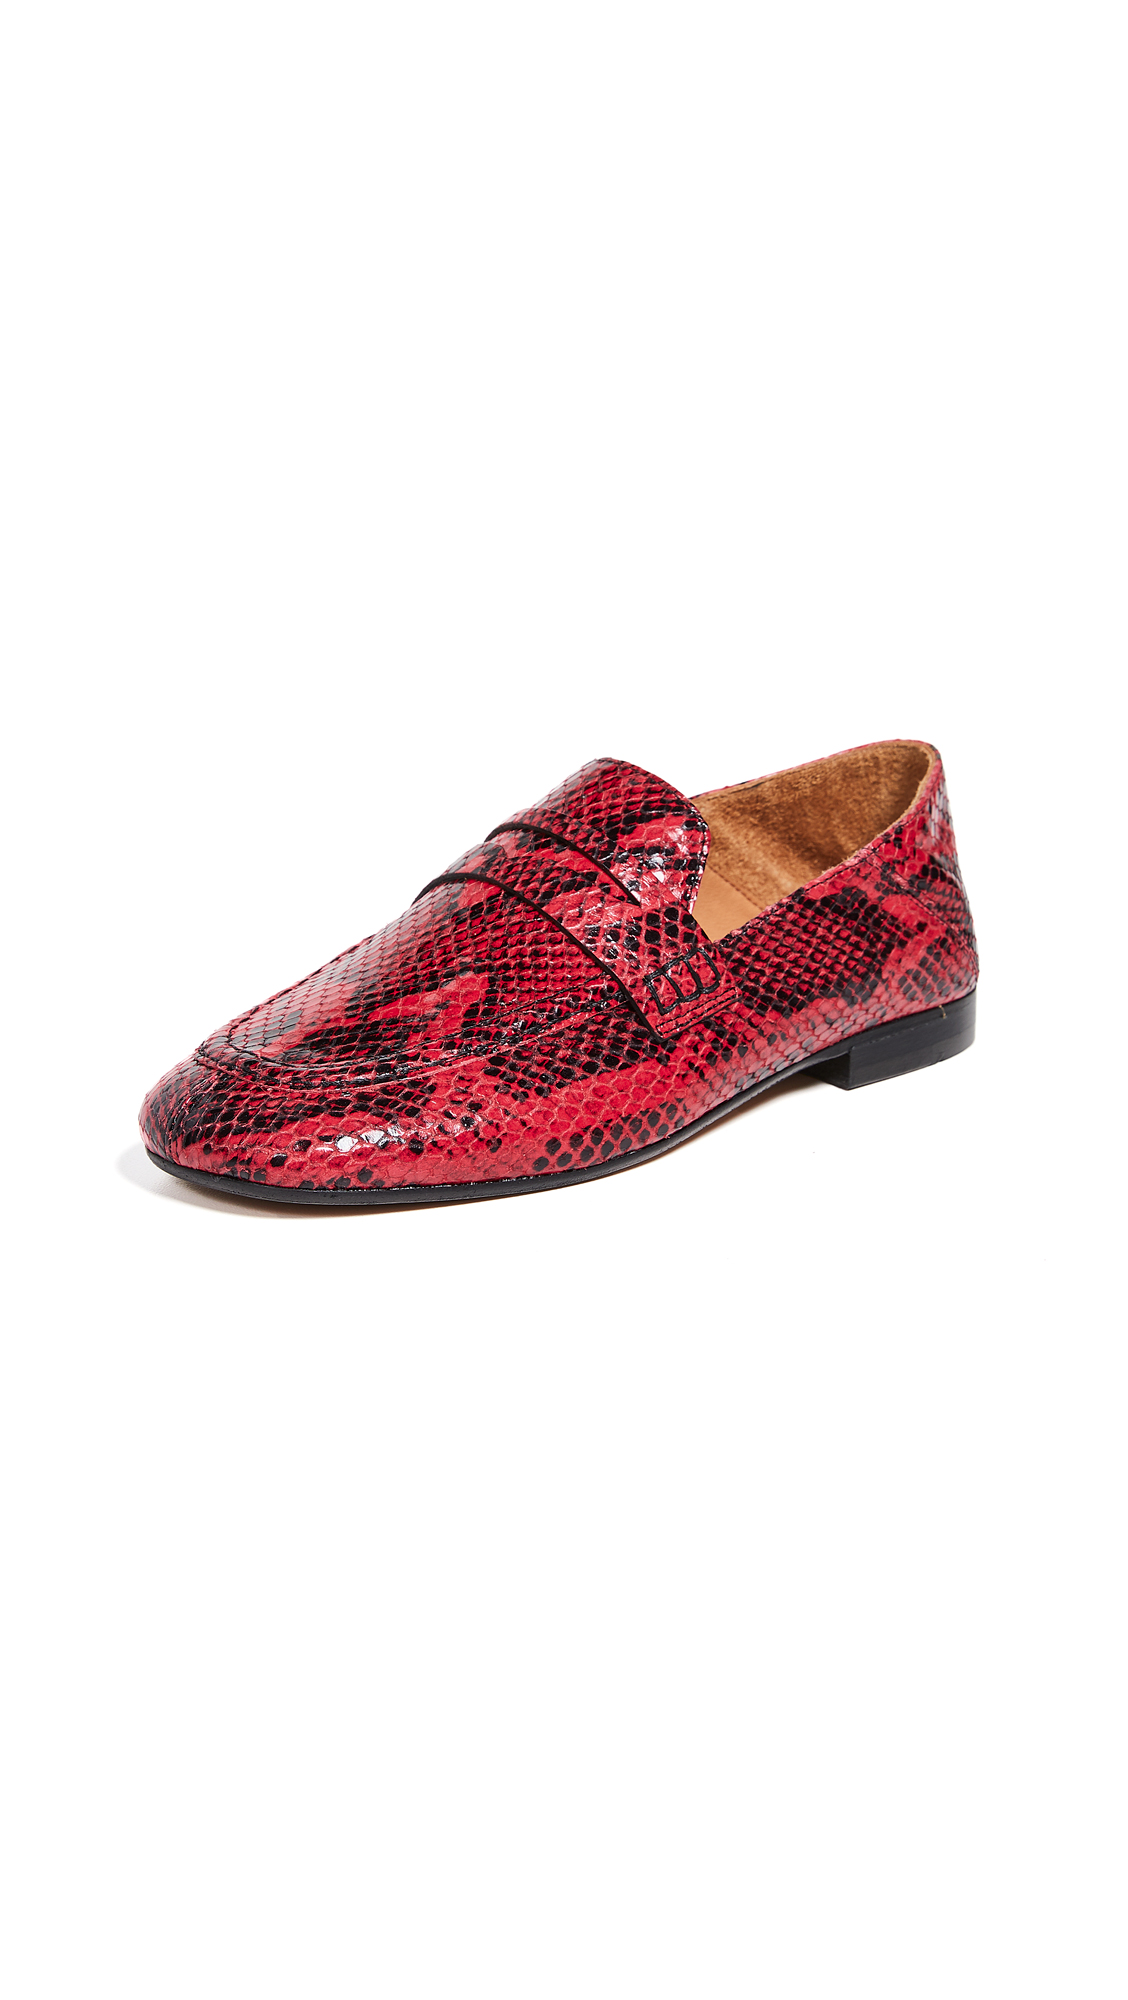 Isabel Marant Fezzy Convertible Loafers - Red